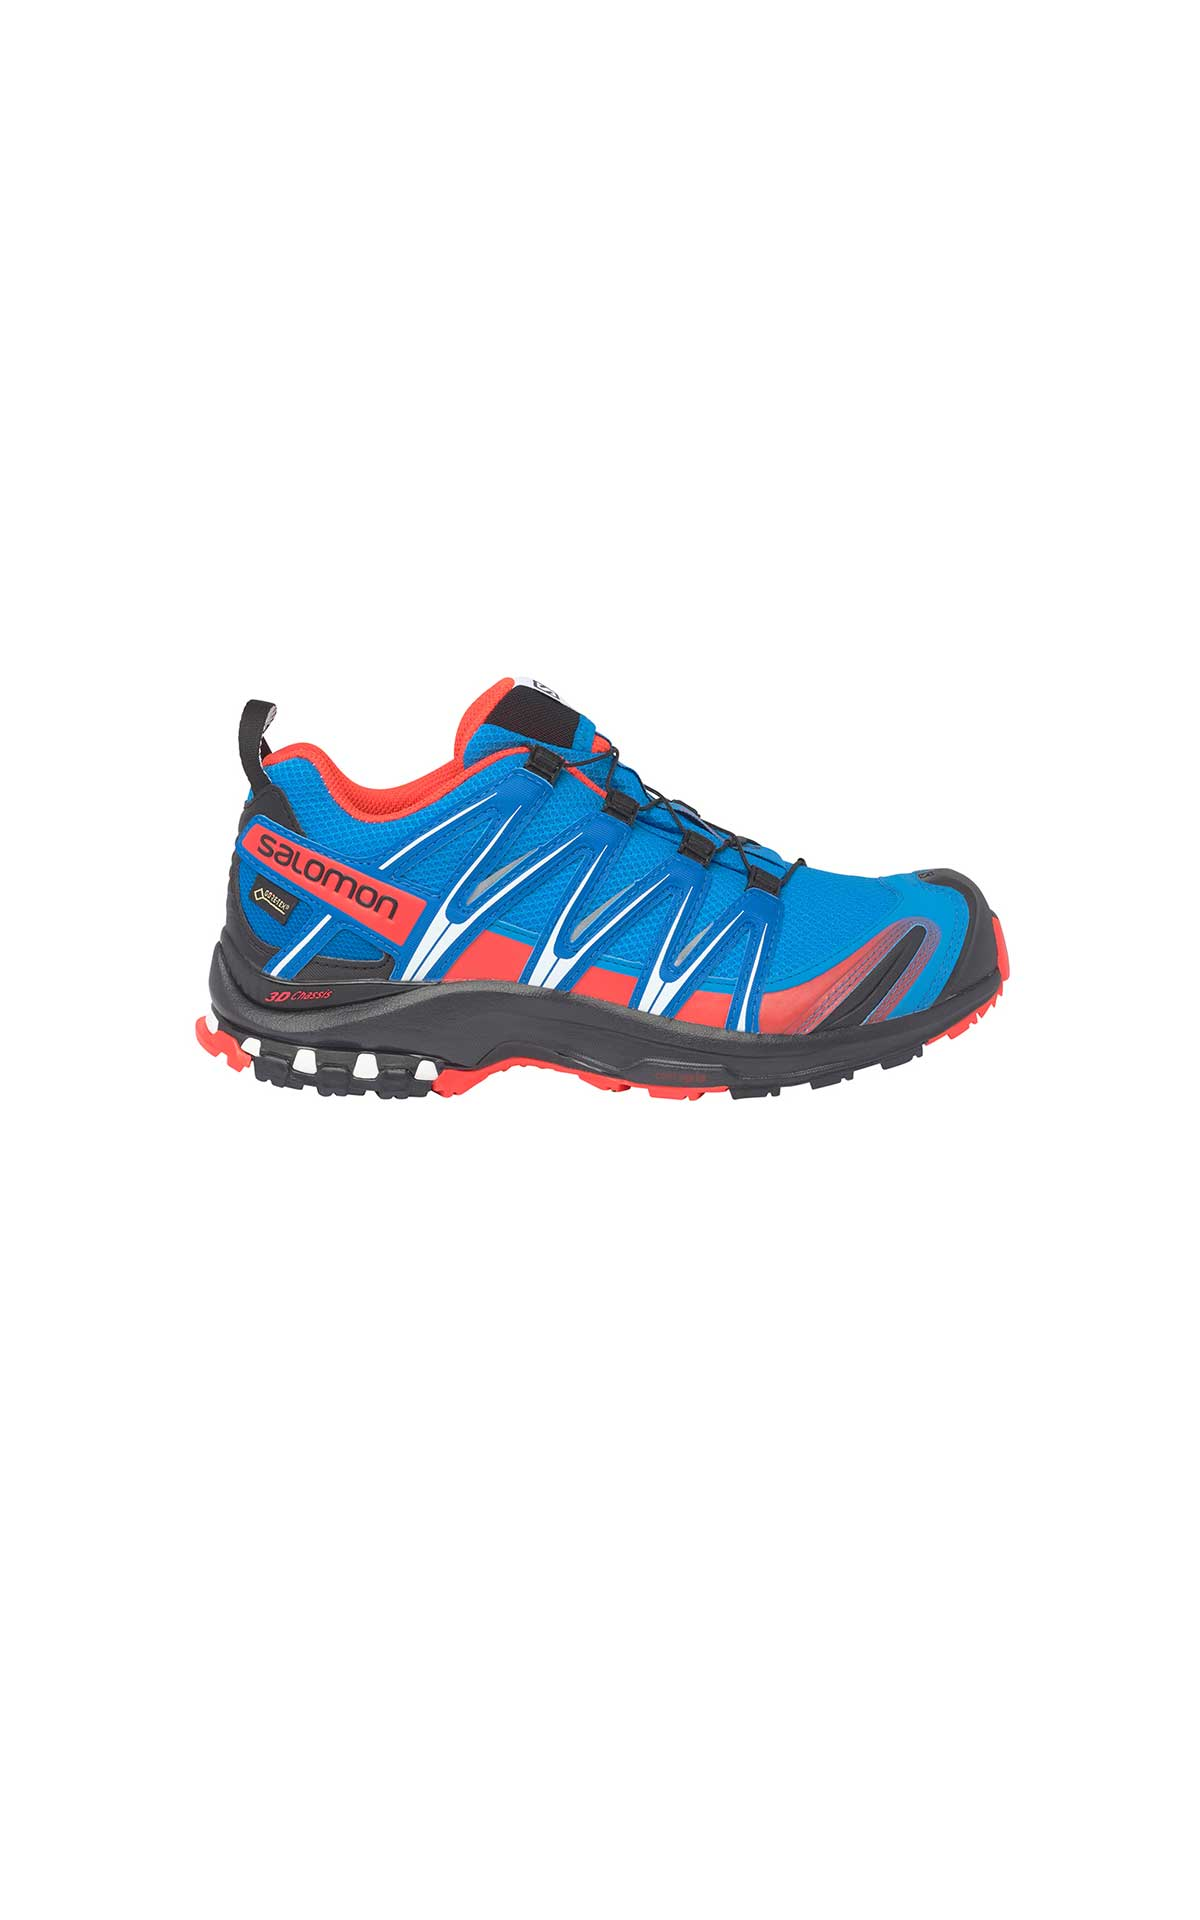 Blue montrail sneakers man Salomon